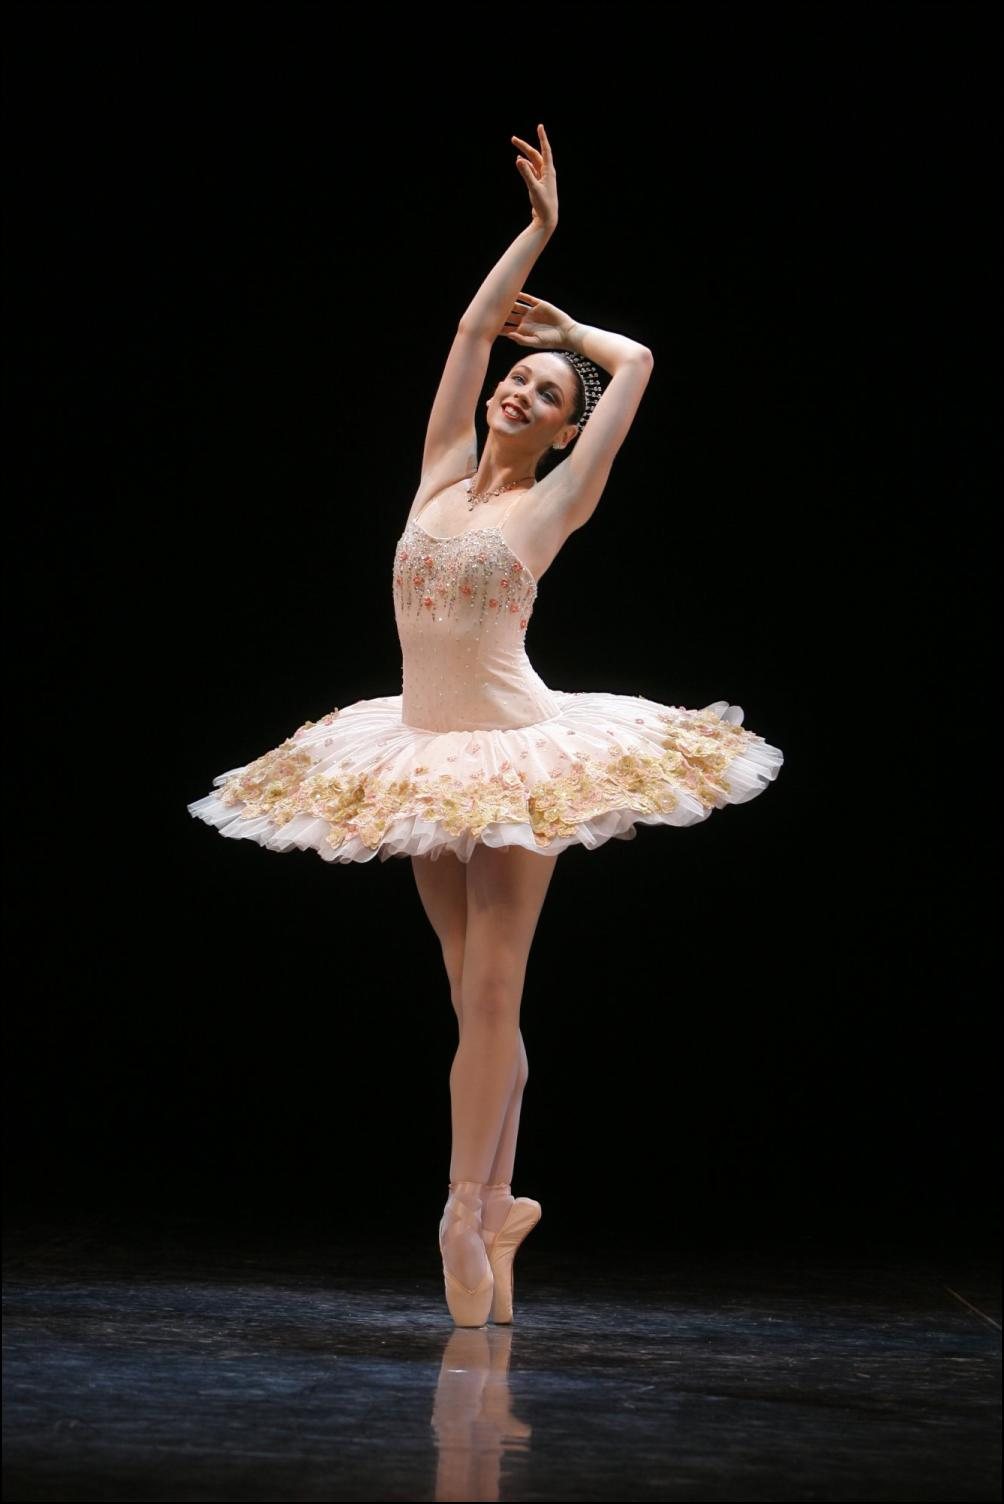 Smiling Ballet Dancer 241.66 Kb